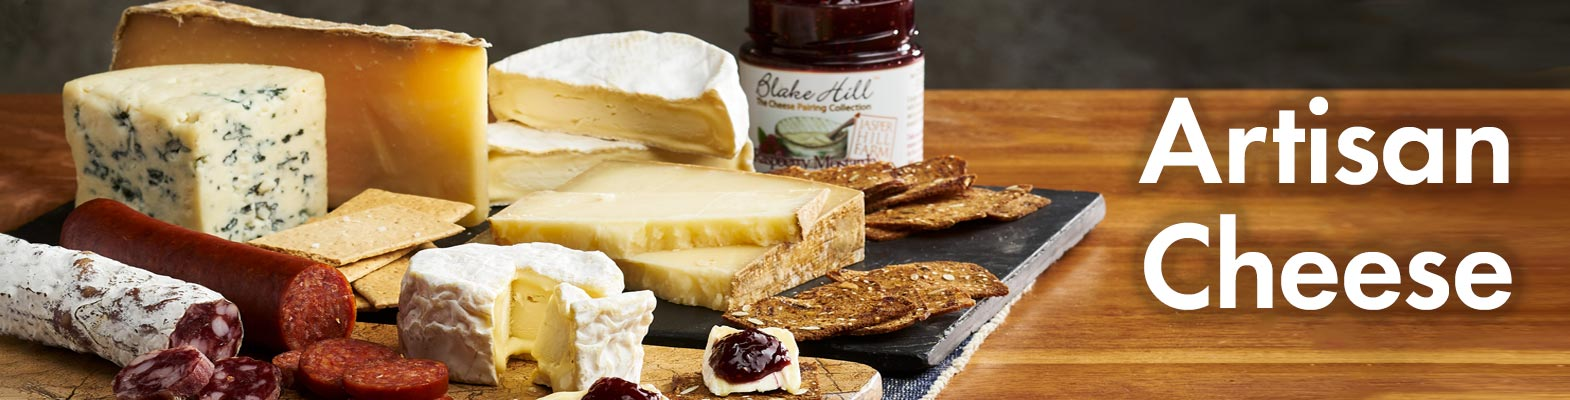 Artisan Cheese Products